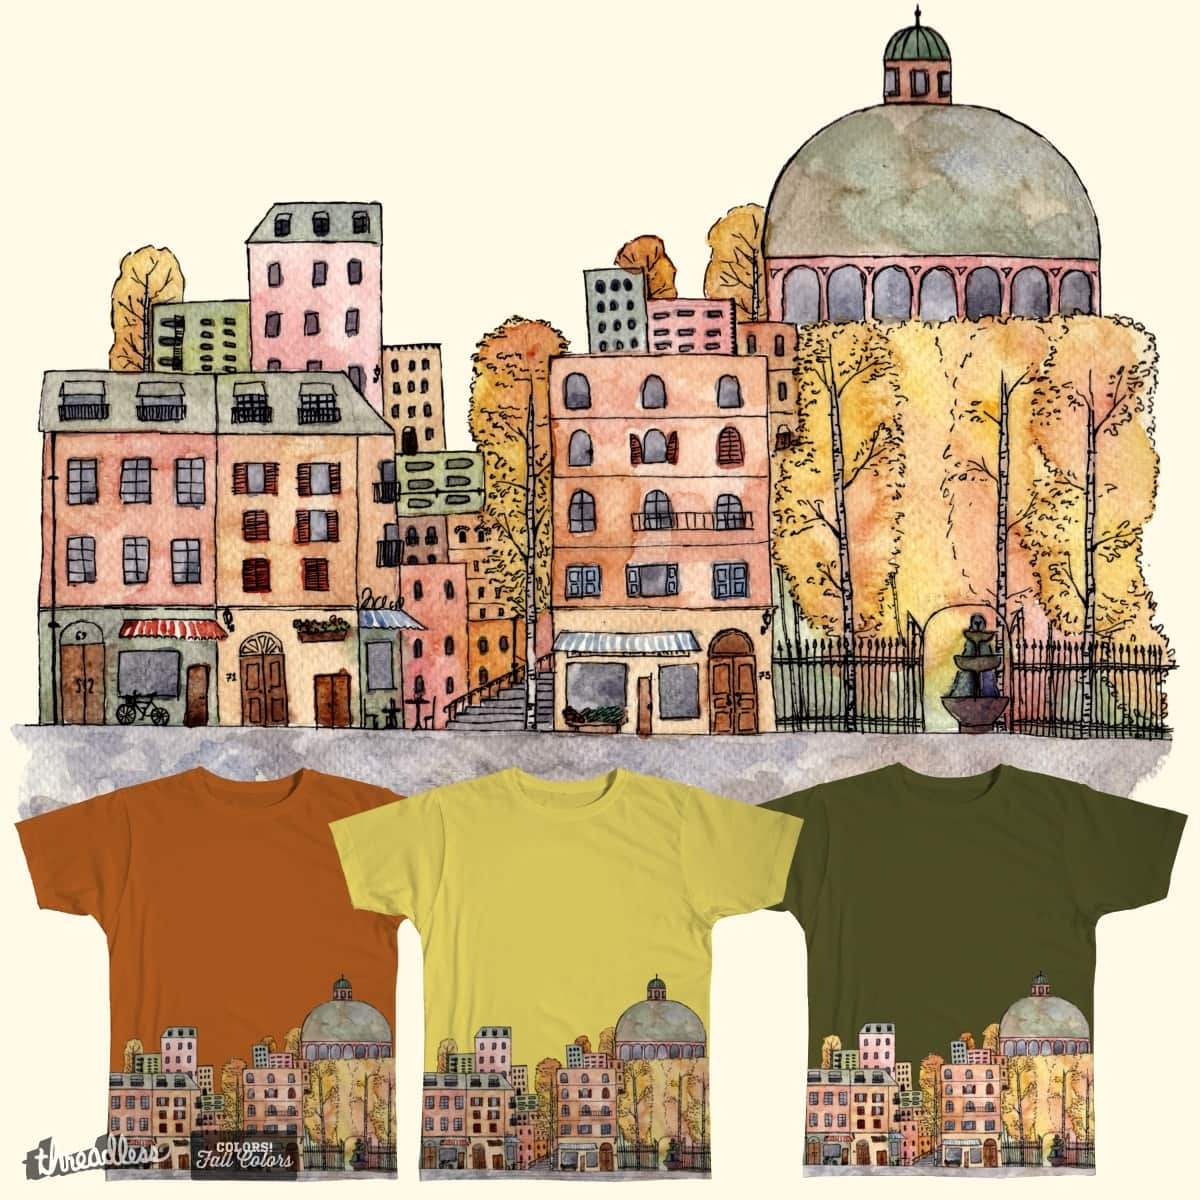 Autumn in the city by RowenaH on Threadless